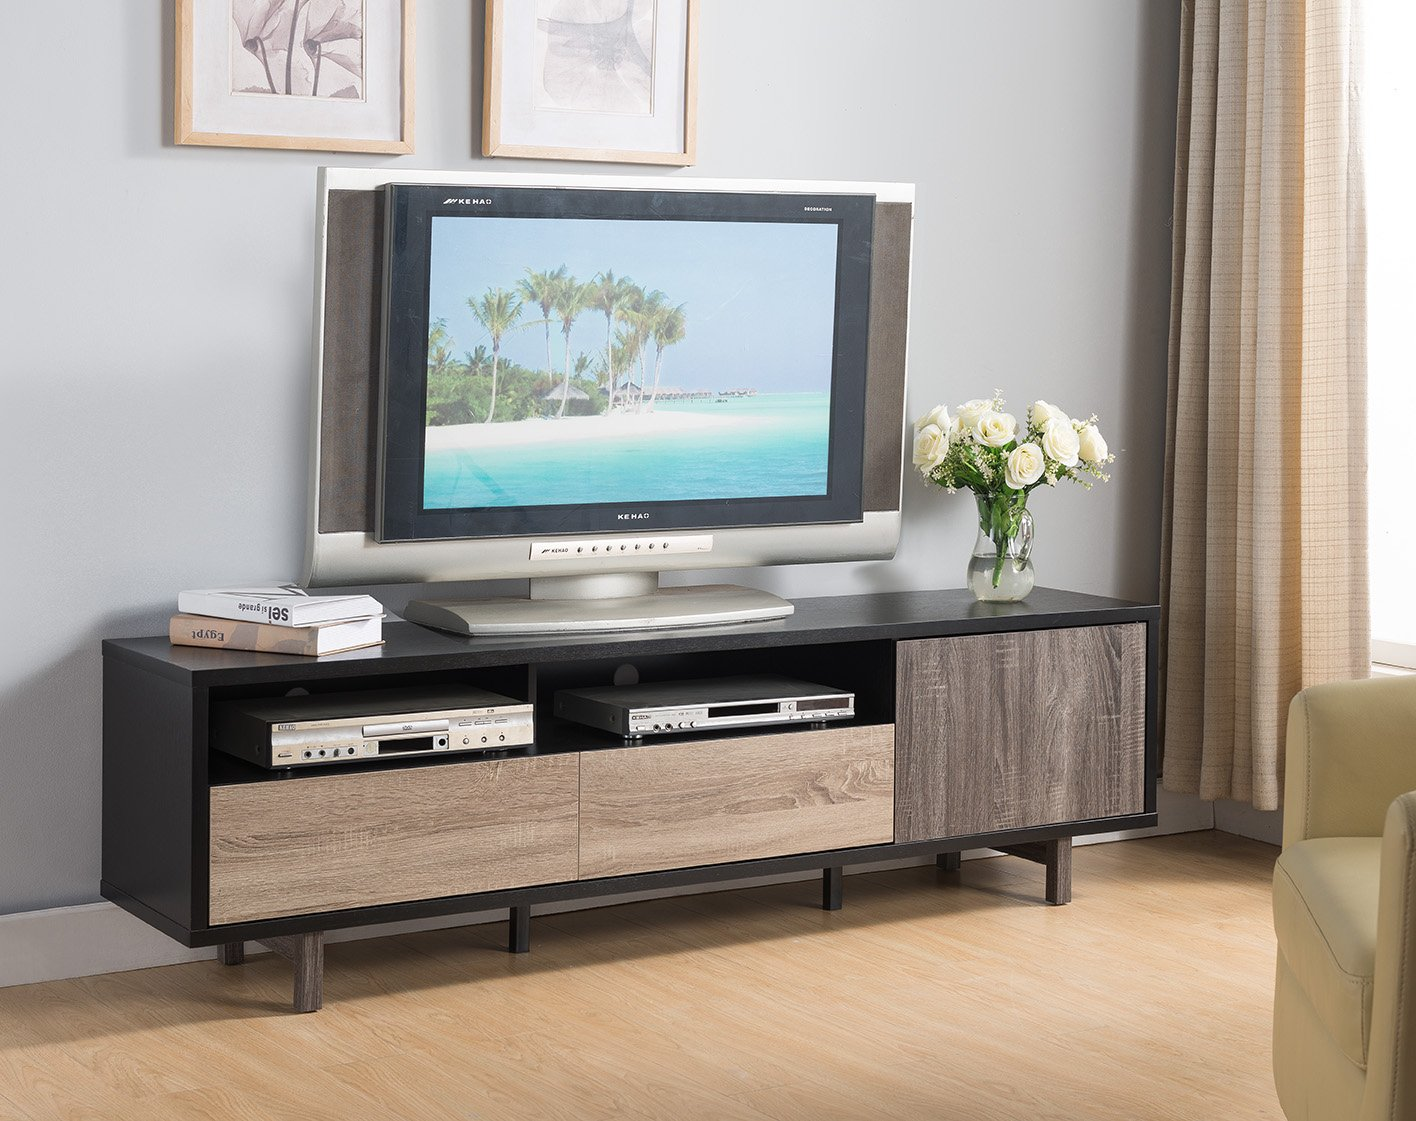 """Smart home 70"""" 3 Toned TV Stand Entertainment Center Console - Stylish and multi-functional tv stand Two display decks, two drawers, and a side cabinet Material: Sustainable high-grade engineered wood finished in wood-veneer for easy to clean and assemble with all included hardware and instructions provided for assembly. - tv-stands, living-room-furniture, living-room - 81WmMq3 t9L -"""